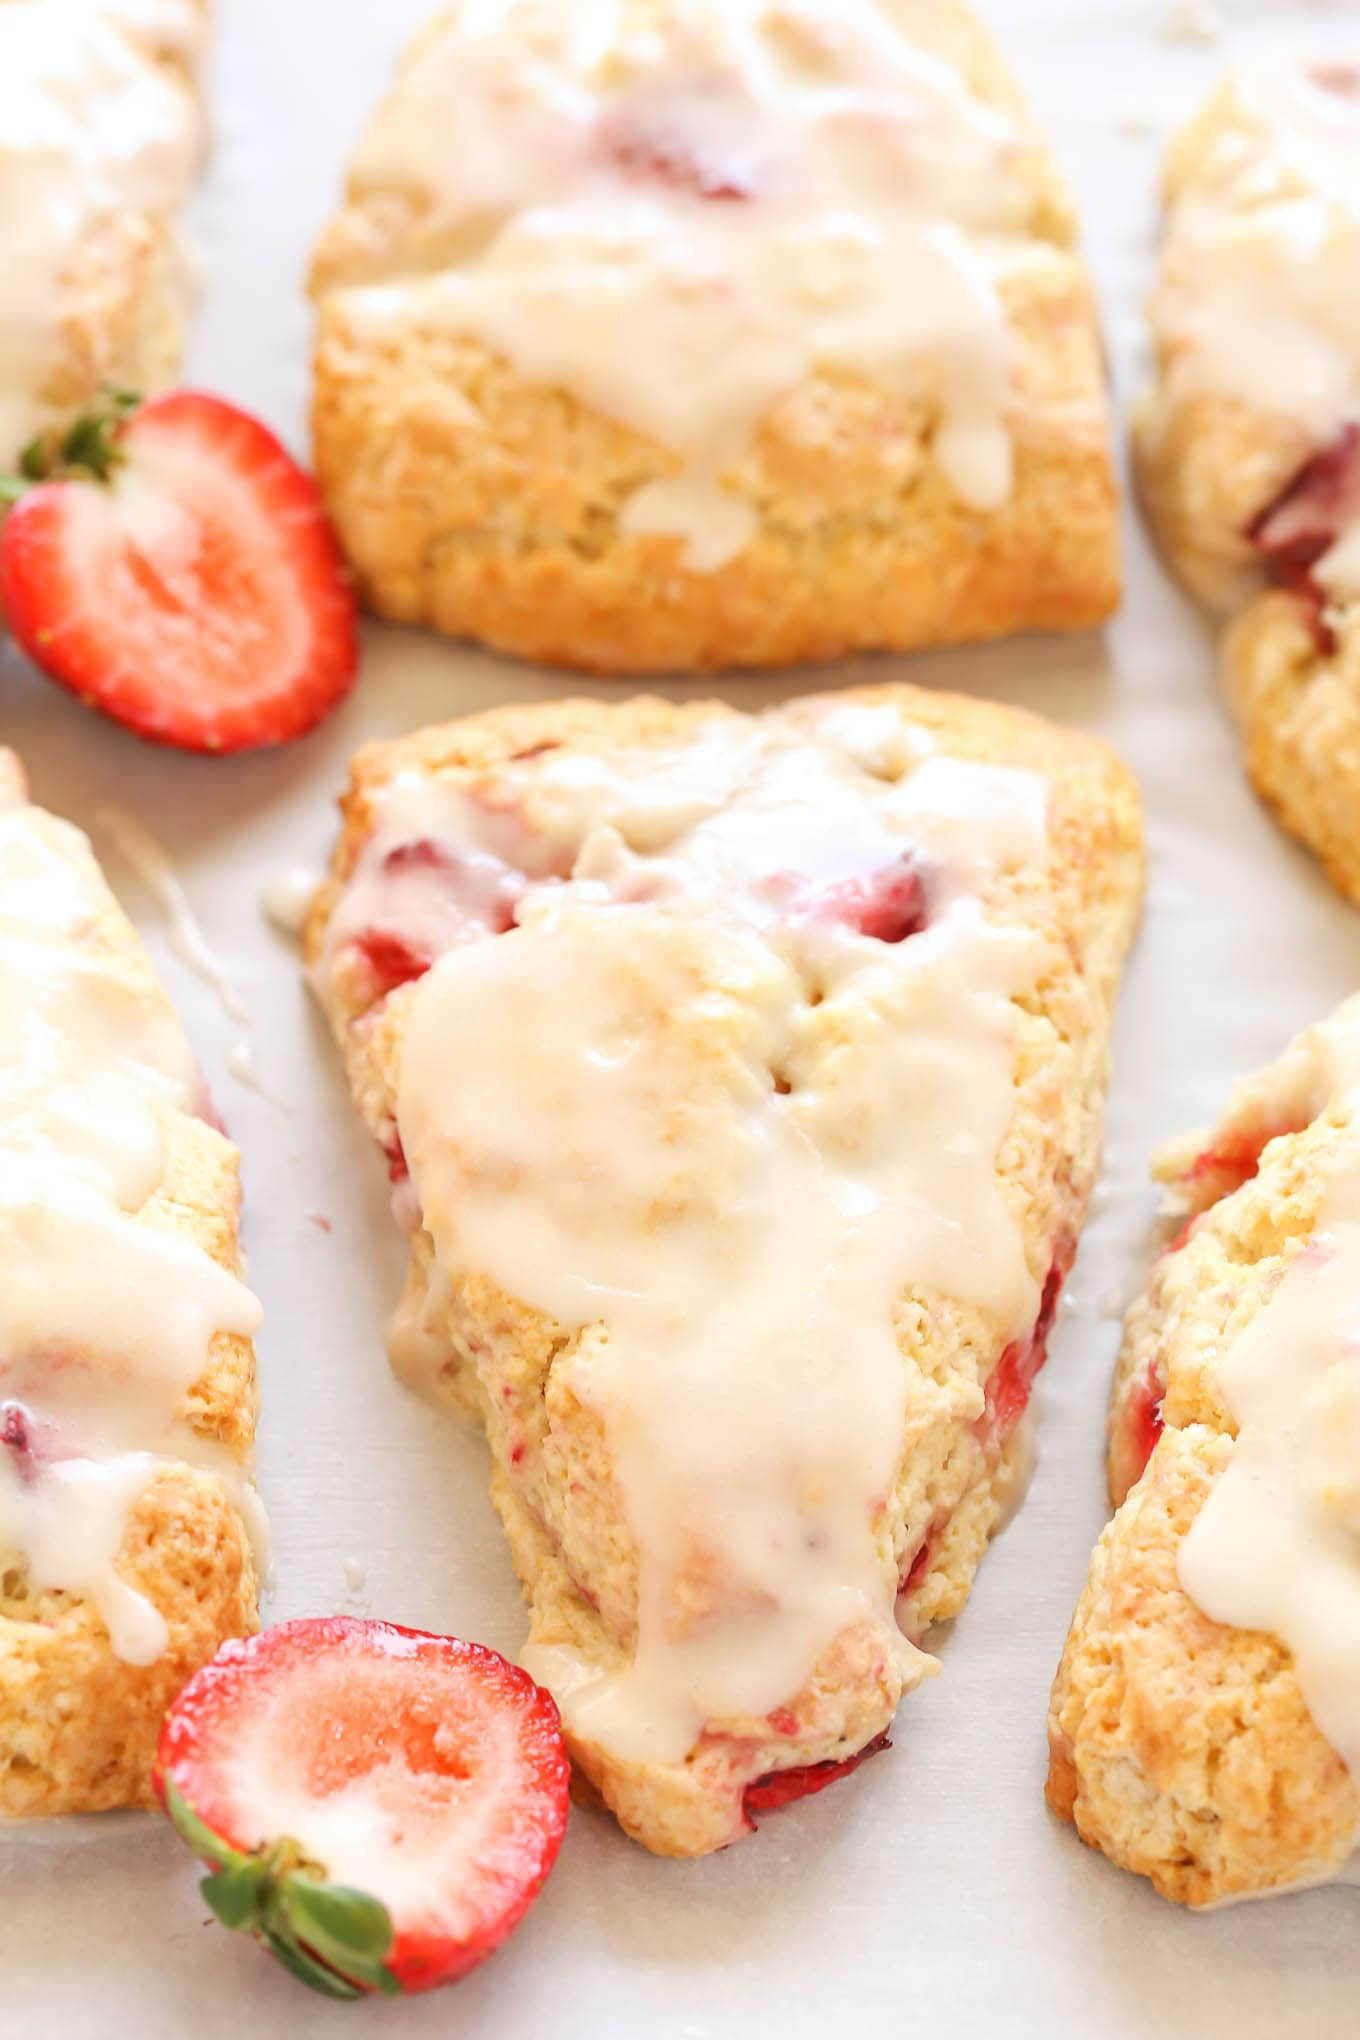 These Strawberry Cream Scones are easy to make, incredibly soft and tender, and perfect for breakfast or brunch!